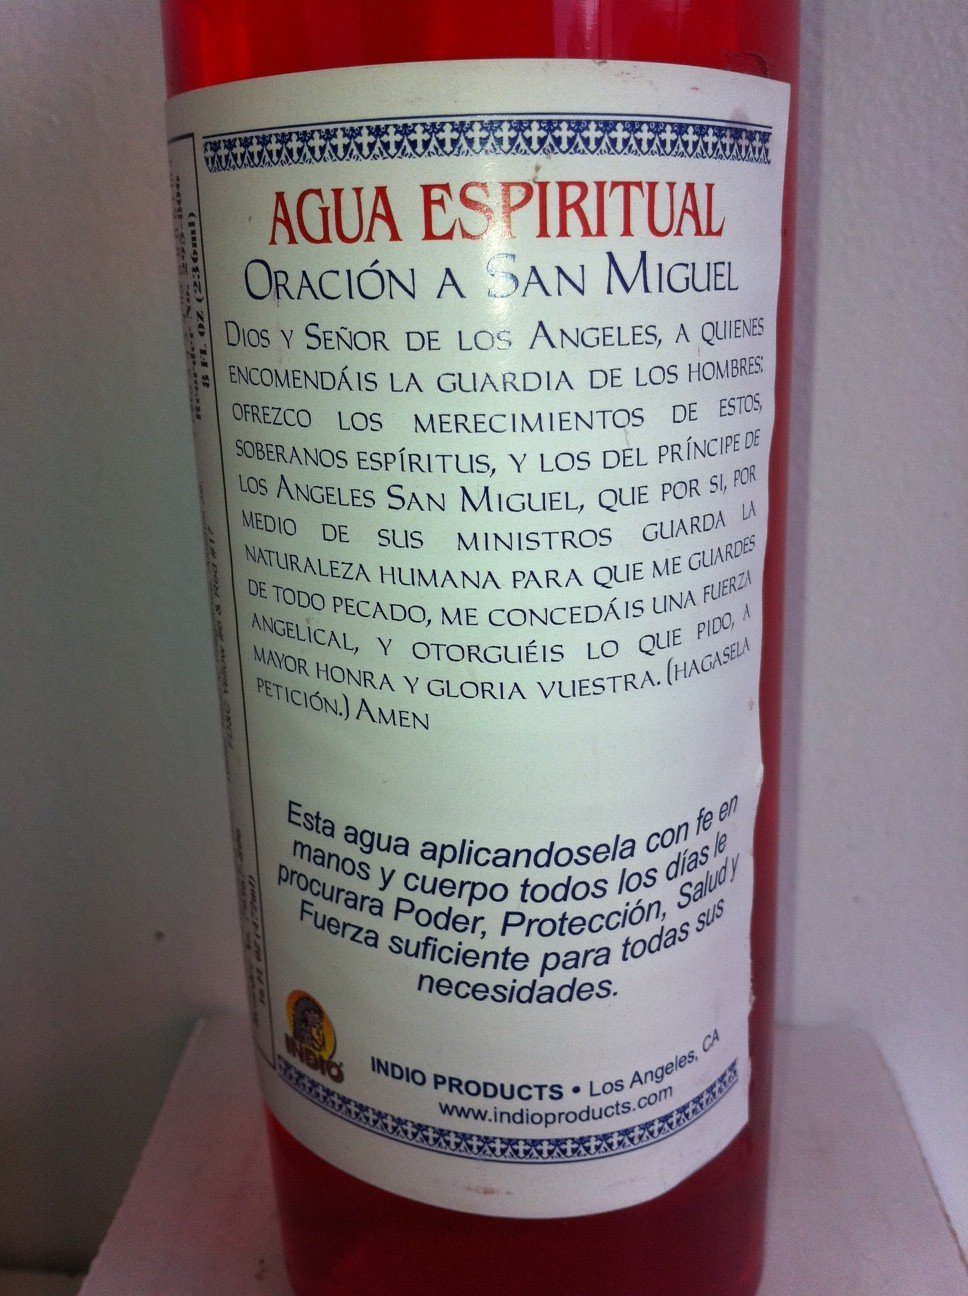 a354c4ca1a7 Amazon.com  Indio Products Spiritual Water for Saint Michael the Archangel ( Agua Espiritual San Miguel Arcangel) in the 16 Fl Oz Size  Health    Personal ...